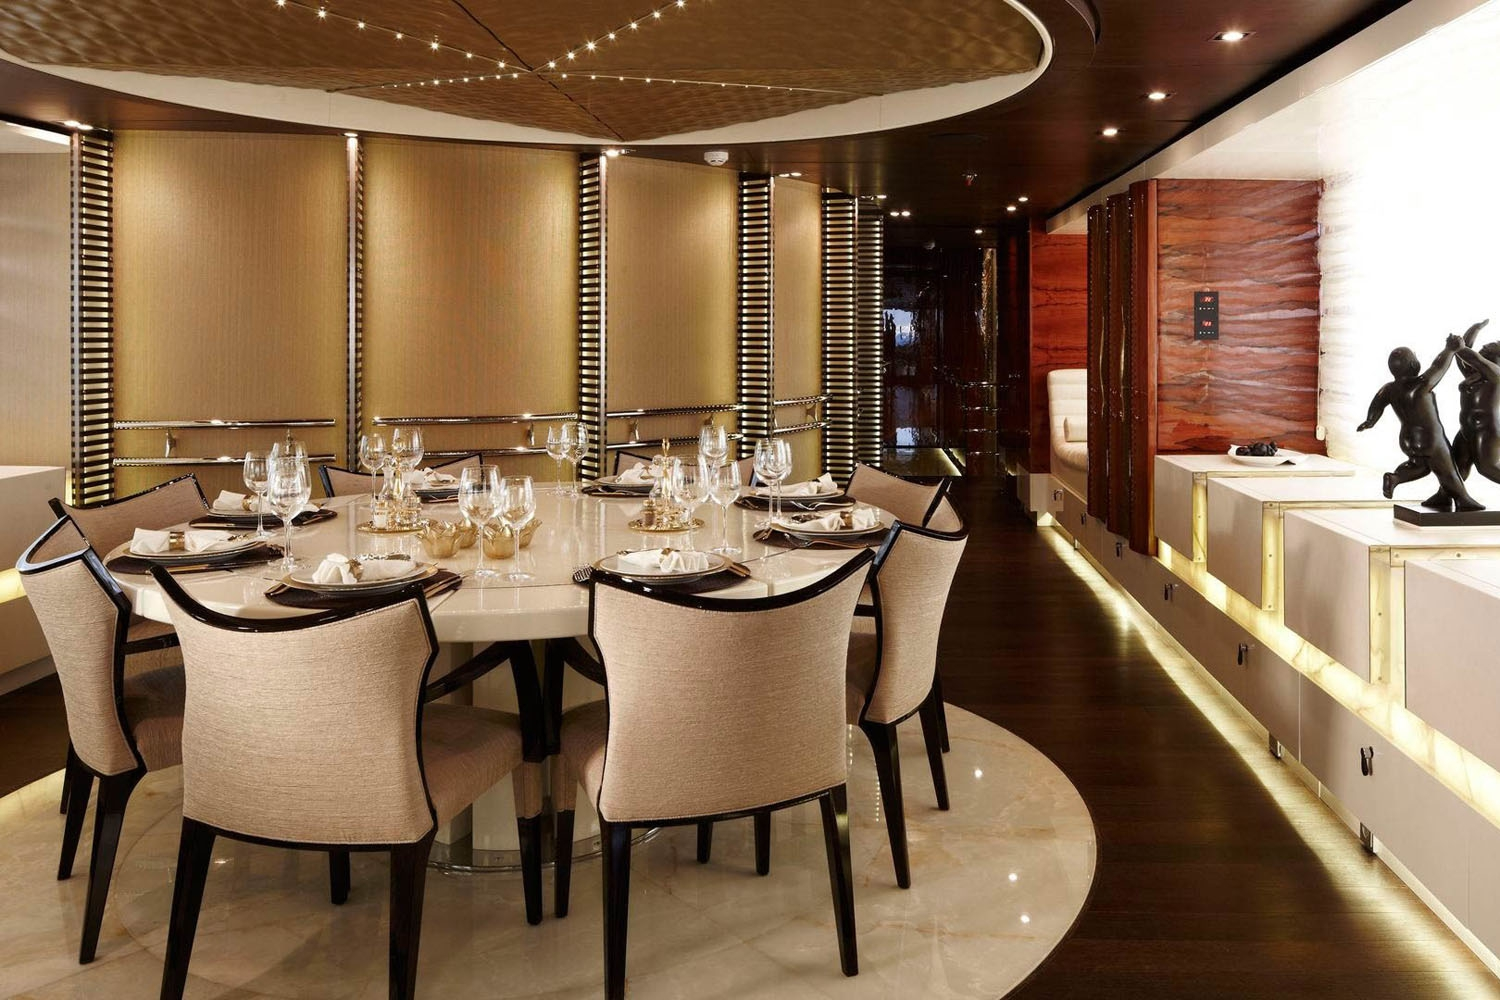 Dining Table Image Gallery – Luxury Yacht Browser | by CHARTERWORLD